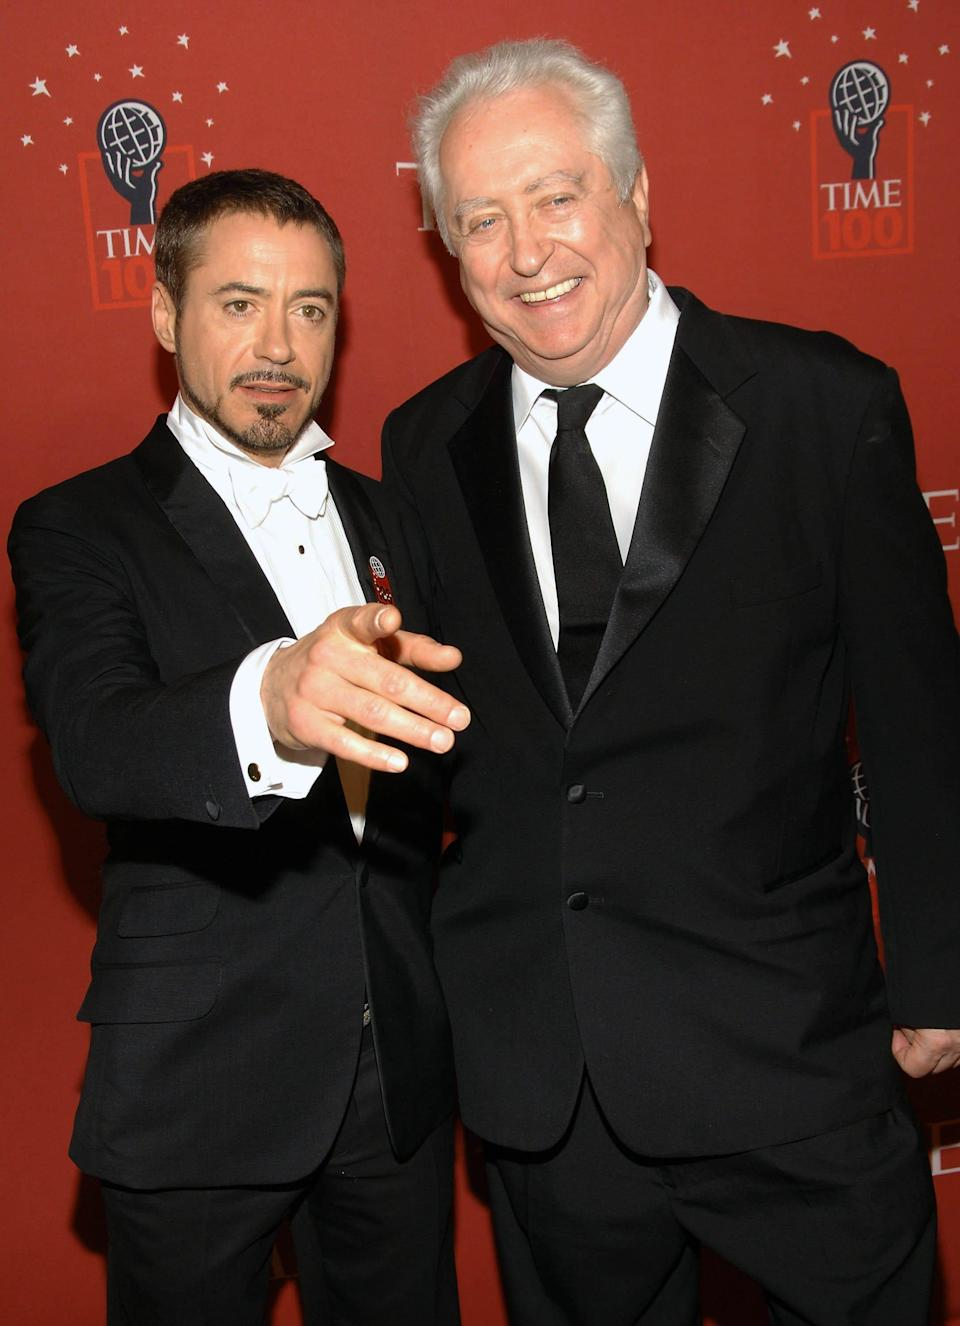 Actor Robert Downey Jr., left, and his father Robert Downey Sr. arrive at Time's 100 Most Influential People in the World Gala on Thursday, May 8, 2008 in New York. (AP Photo/Evan Agostini) ORG XMIT: NYEA115